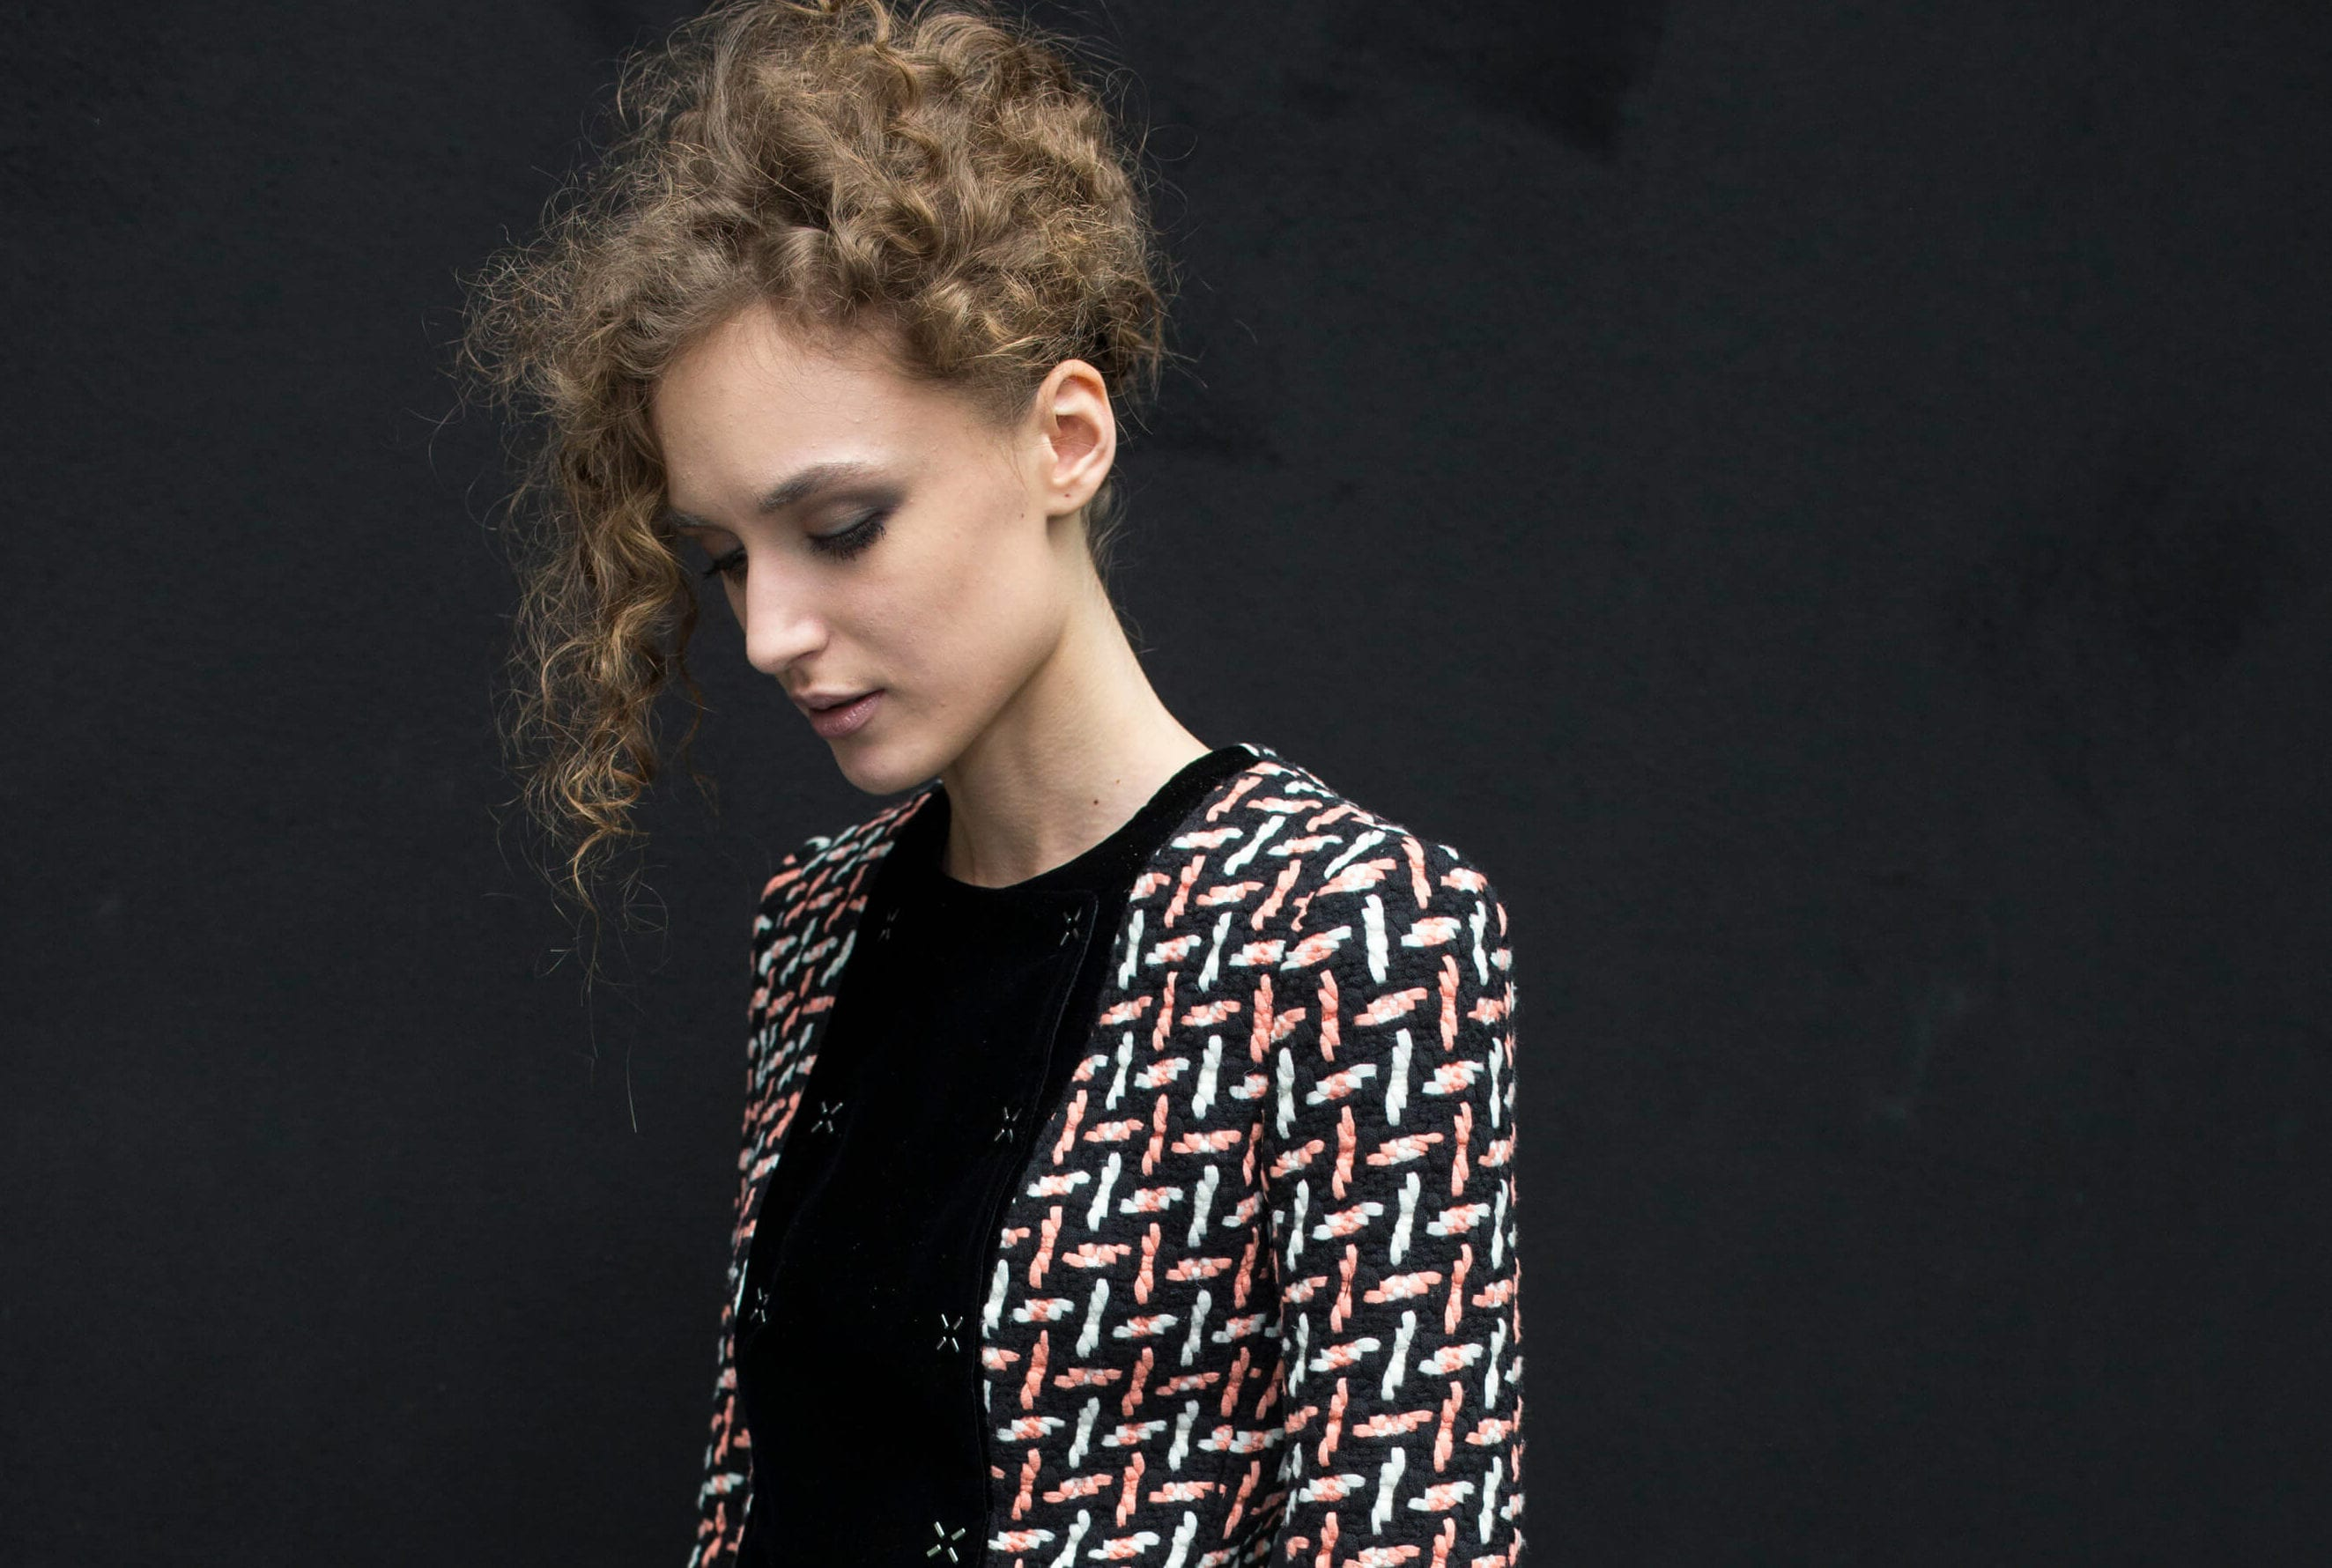 Curly hair hairstyles: woman with curly hair swept up in '80s style standing against a black backdrop wearing pattern jacket